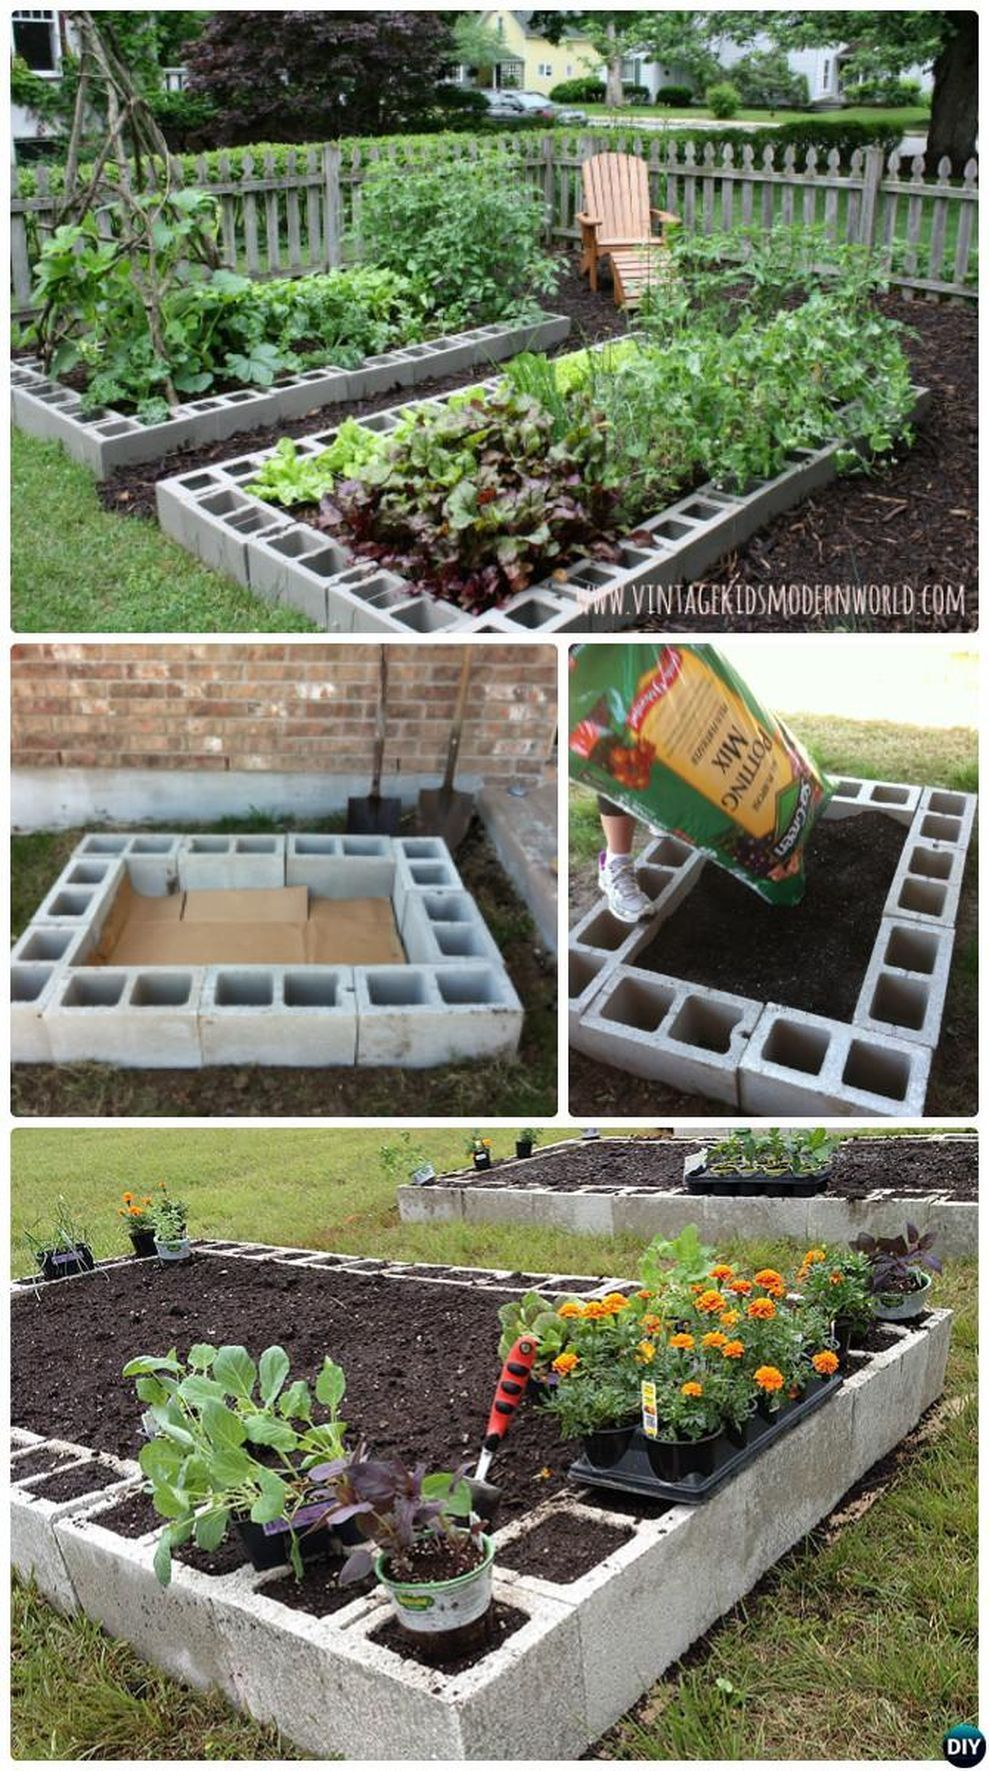 Vegetable garden design  Affordable backyard vegetable garden designs ideas   Garden